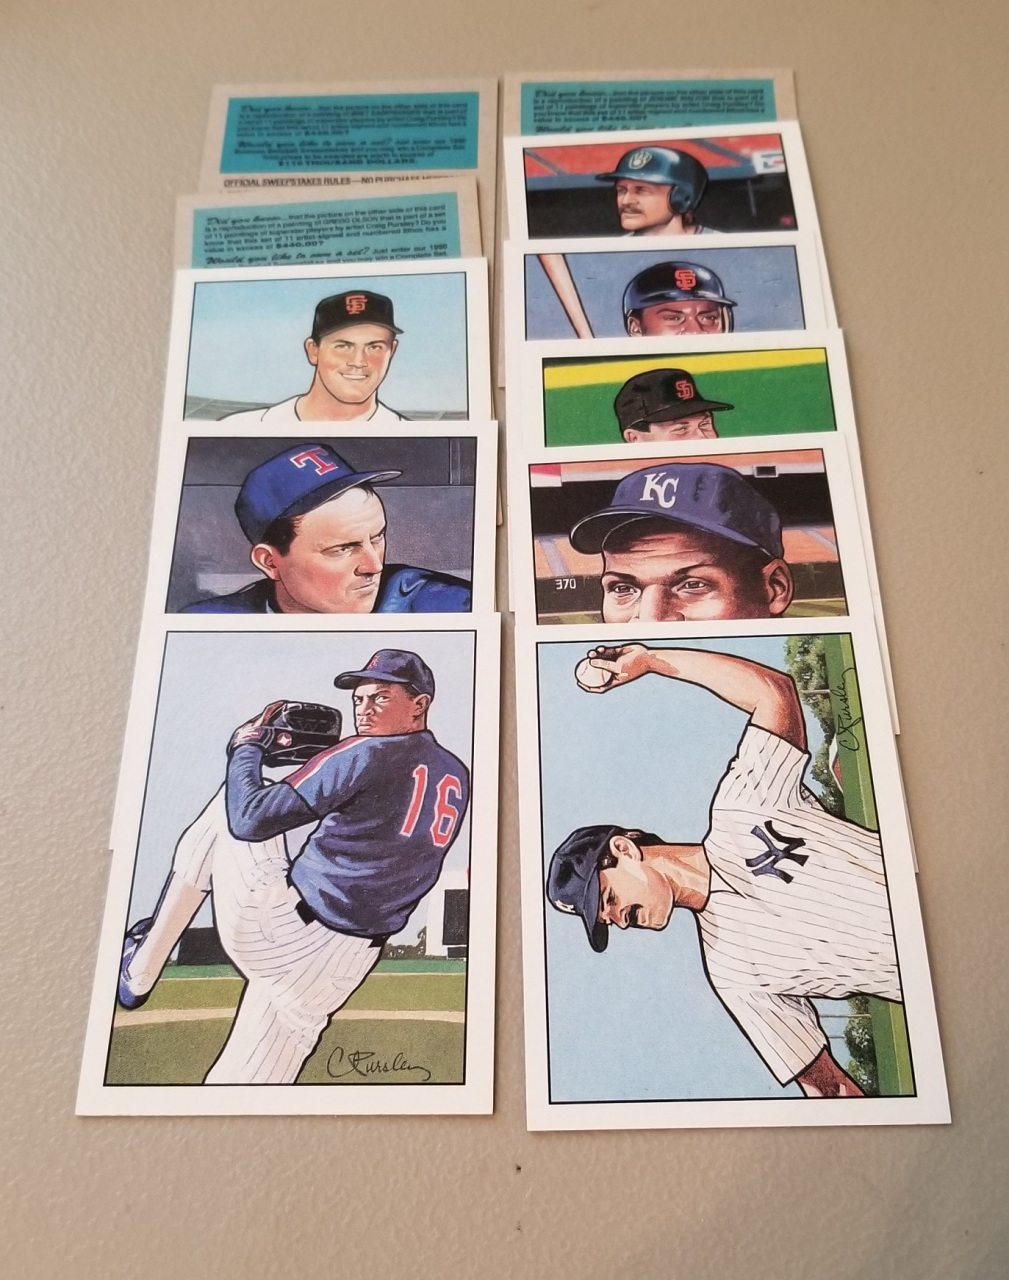 1990 1994 Baseball Trading Card Sets For Sale Baseball